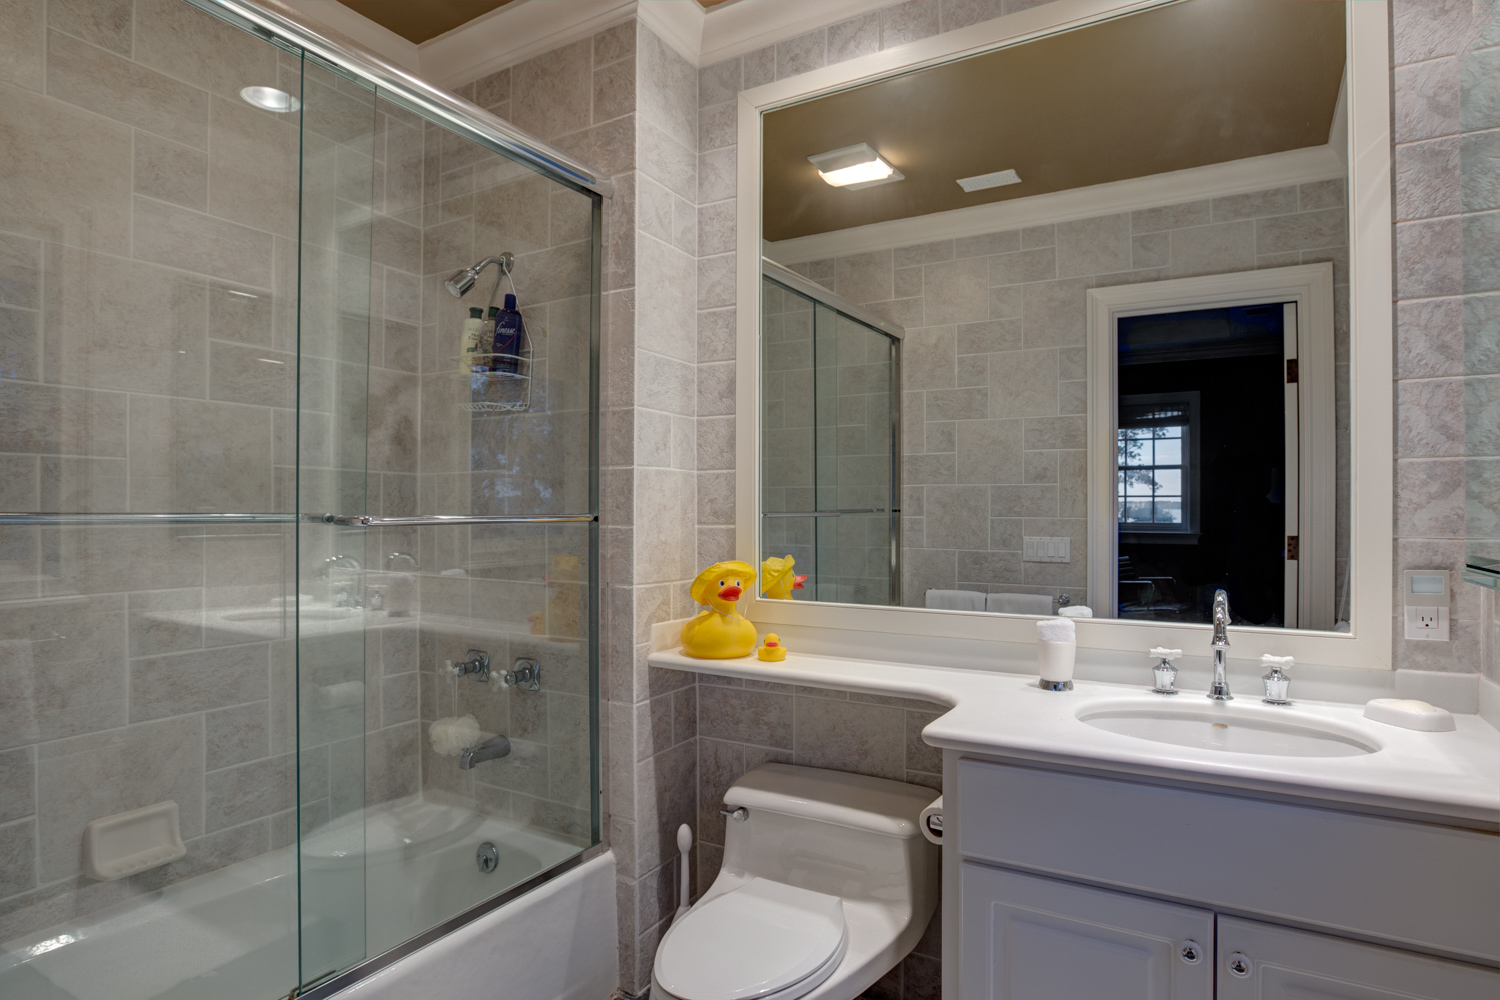 240 bathroom-next-to-office-PS2.jpg